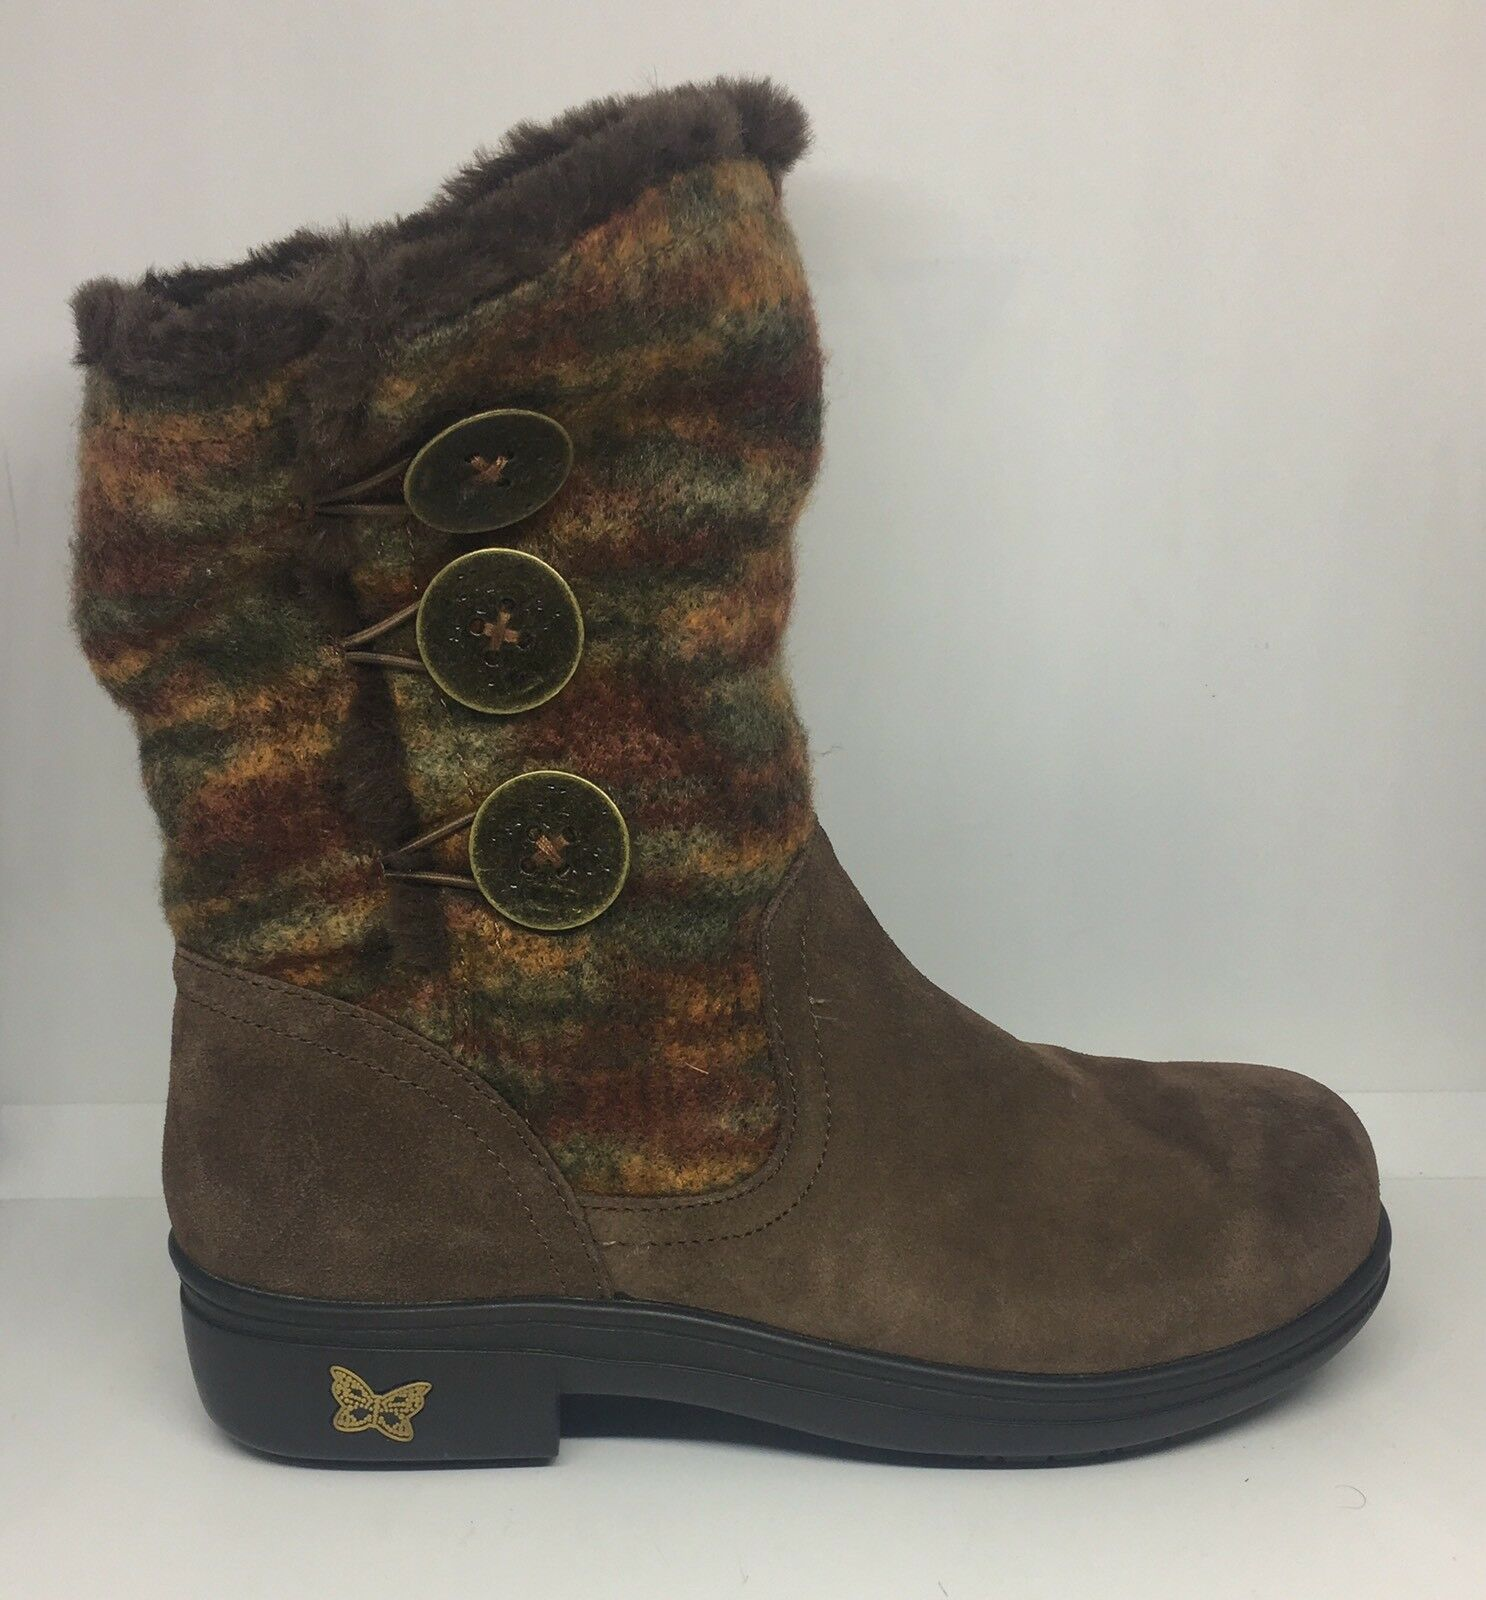 Alegria Nanook Winter Stiefel Braun Suede And Faux Fur Lined Gre 36 (6-6.5)